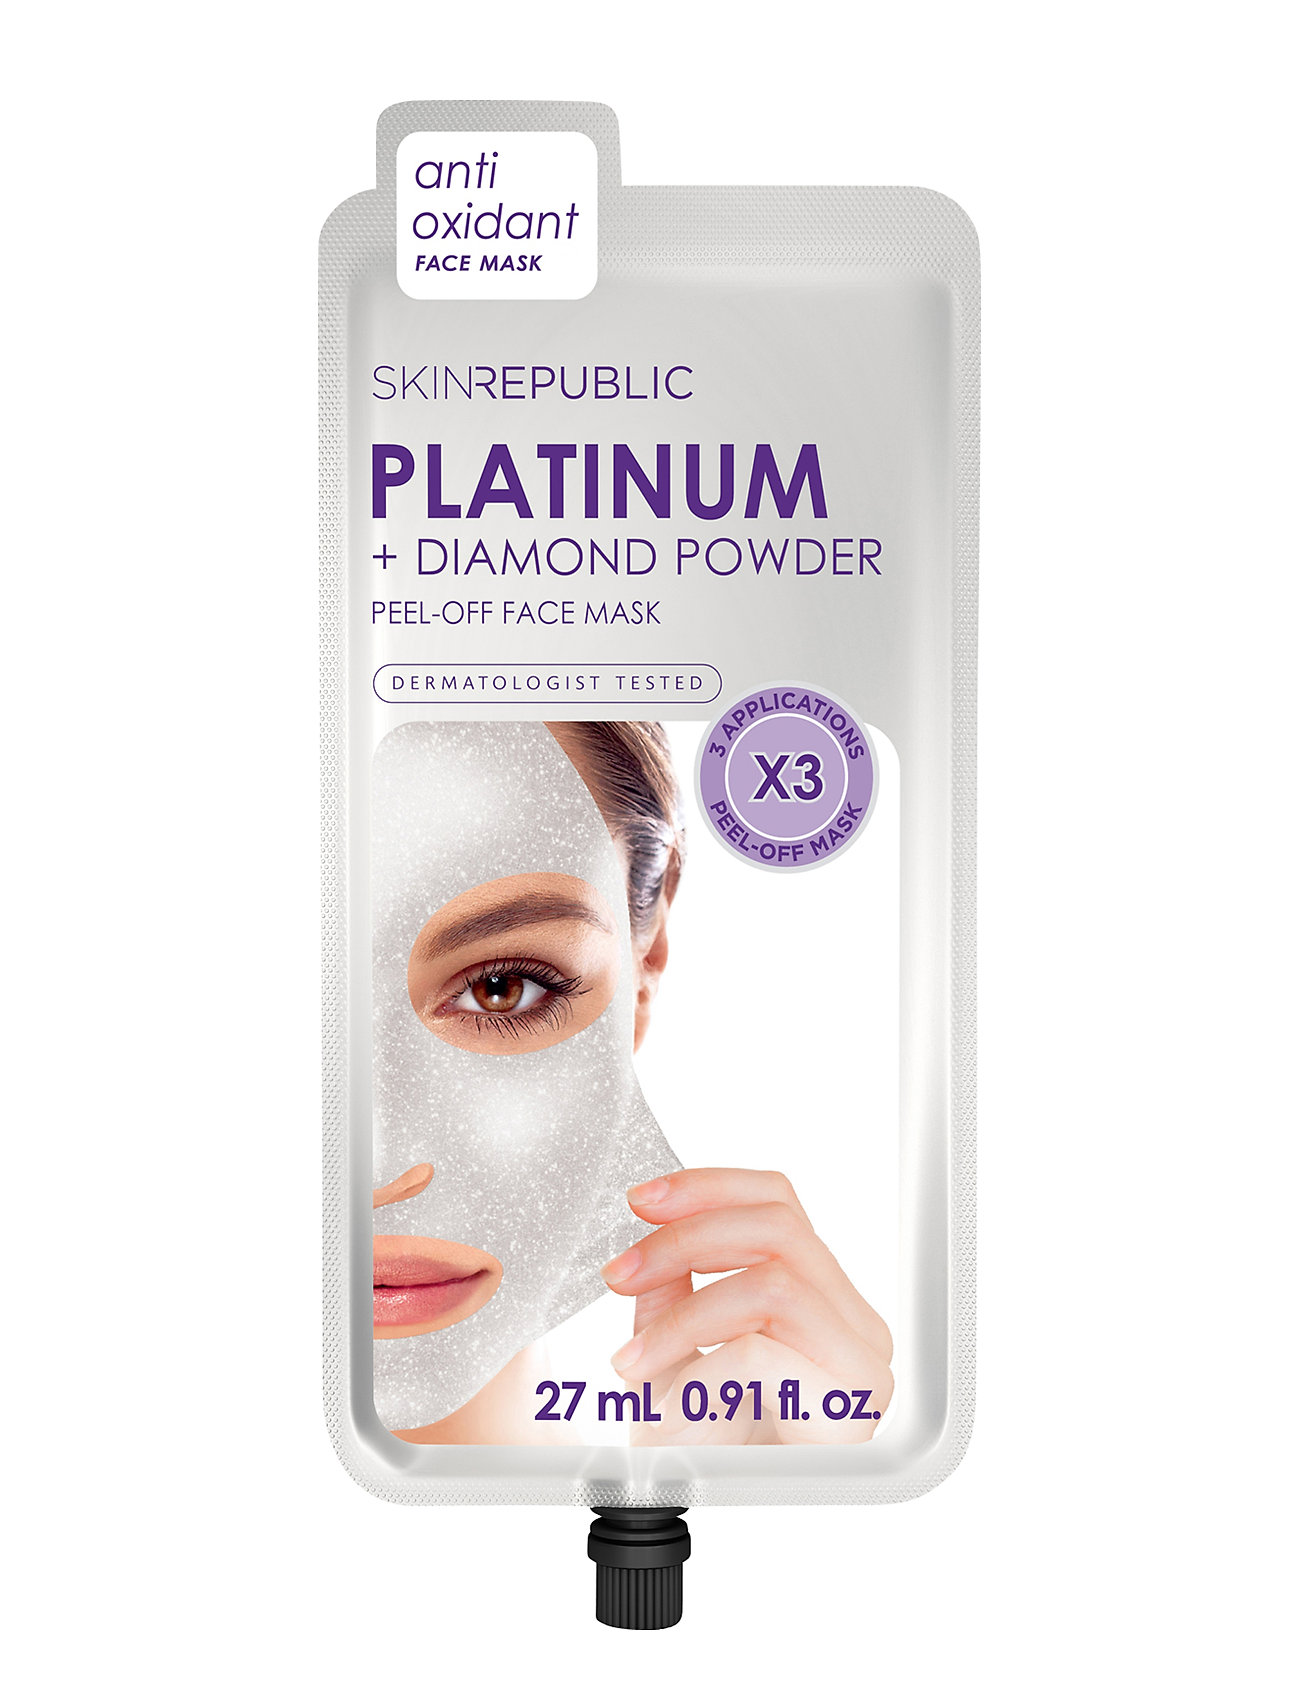 Image of Platinum Peel-Off Face Mask Beauty WOMEN Skin Care Face Sheet Mask Nude Skin Republic (3123265321)